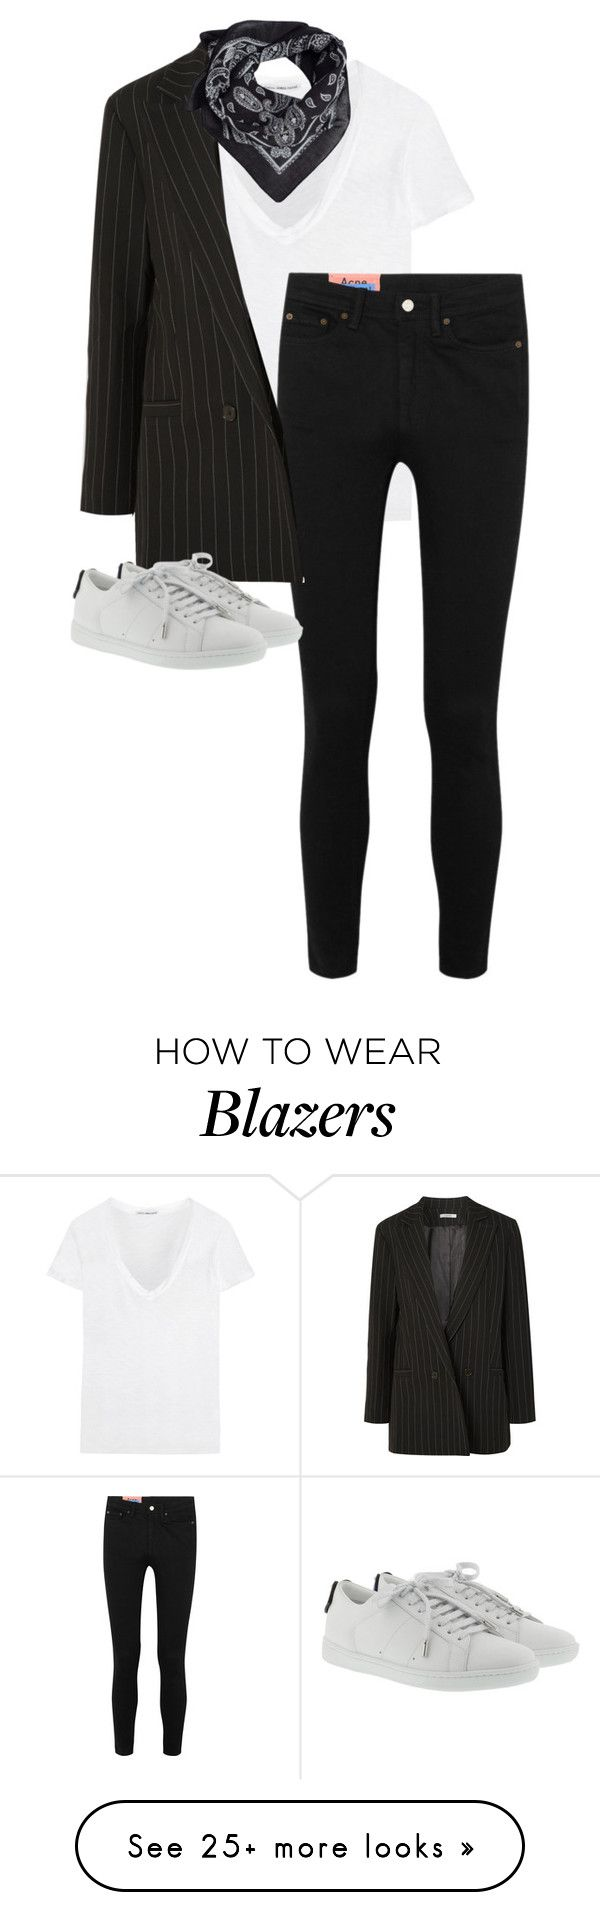 """""""Untitled #13642"""" by alexsrogers on Polyvore featuring James Perse, Acne Studios, Ganni, MANGO and Yves Saint Laurent"""